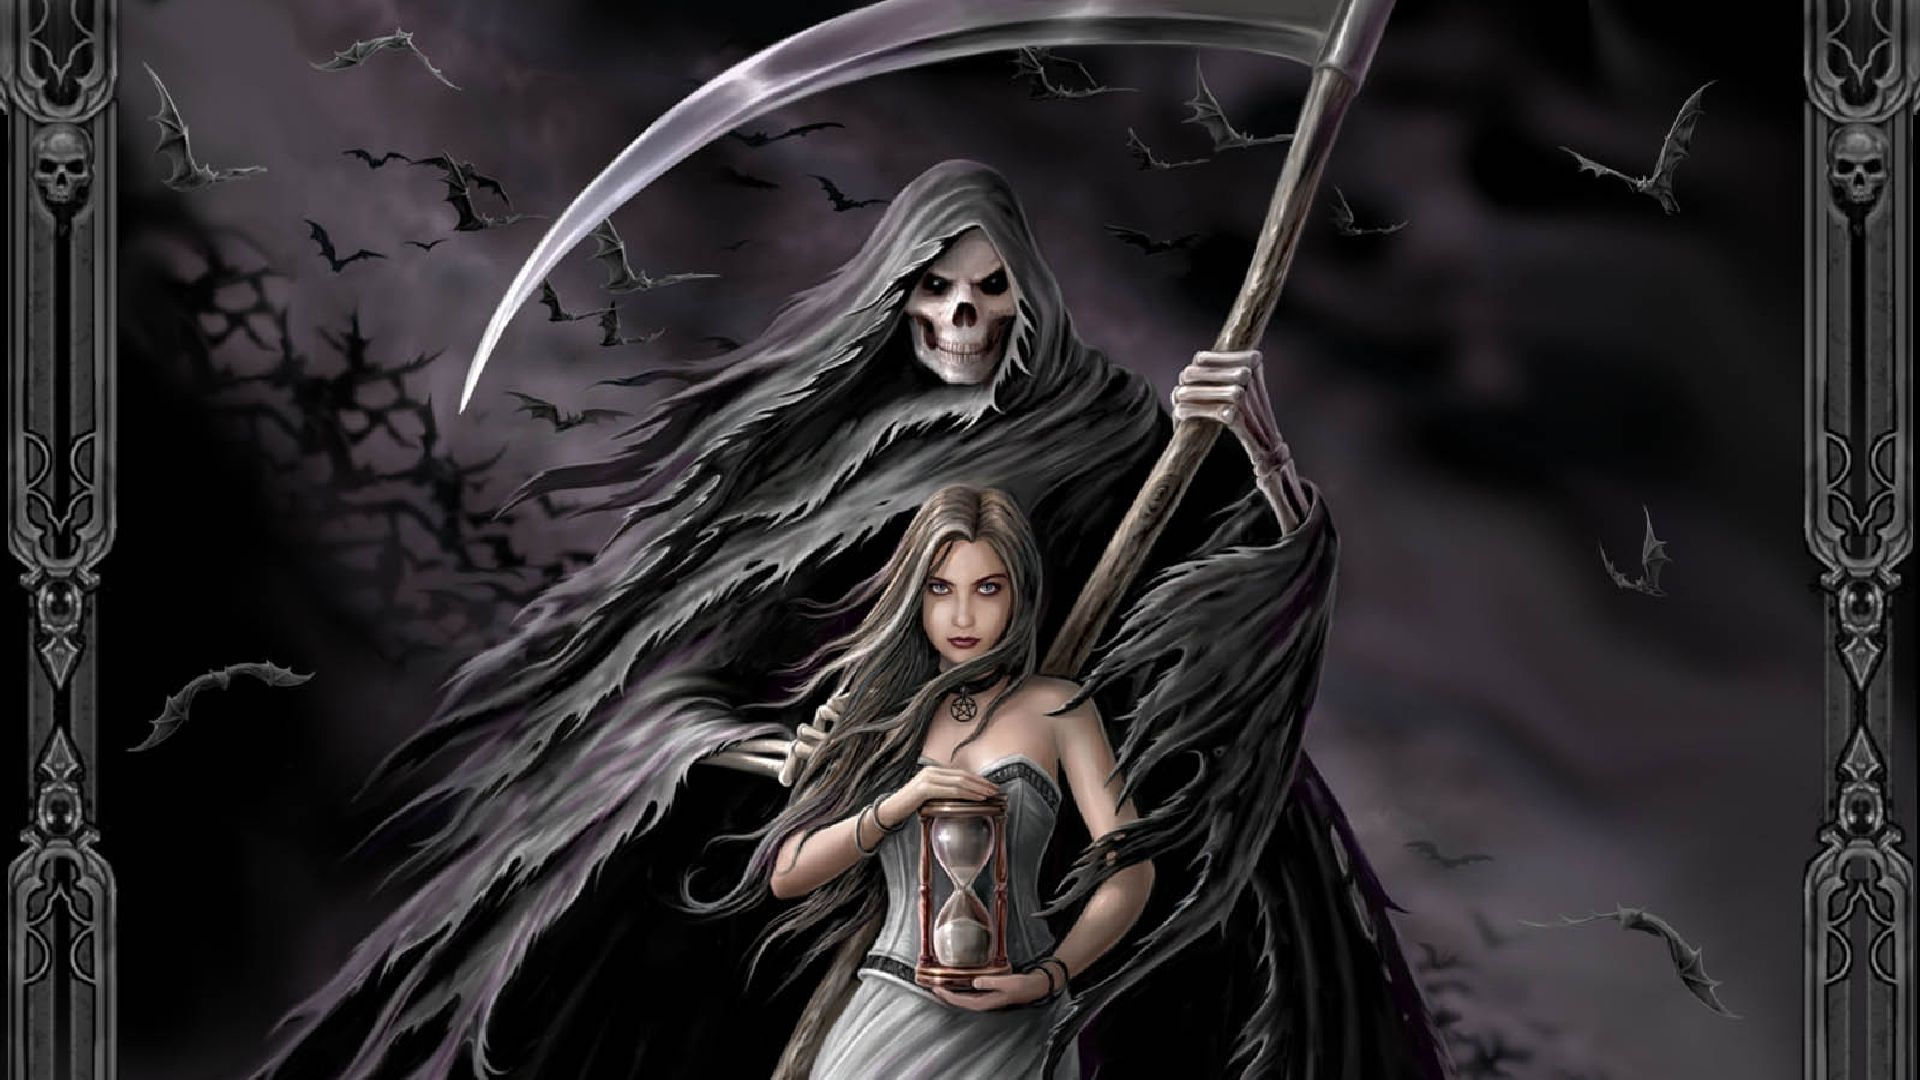 Pin by diana salinas sandoval on grim reaper angel of death pintere - Free evil angel pictures ...